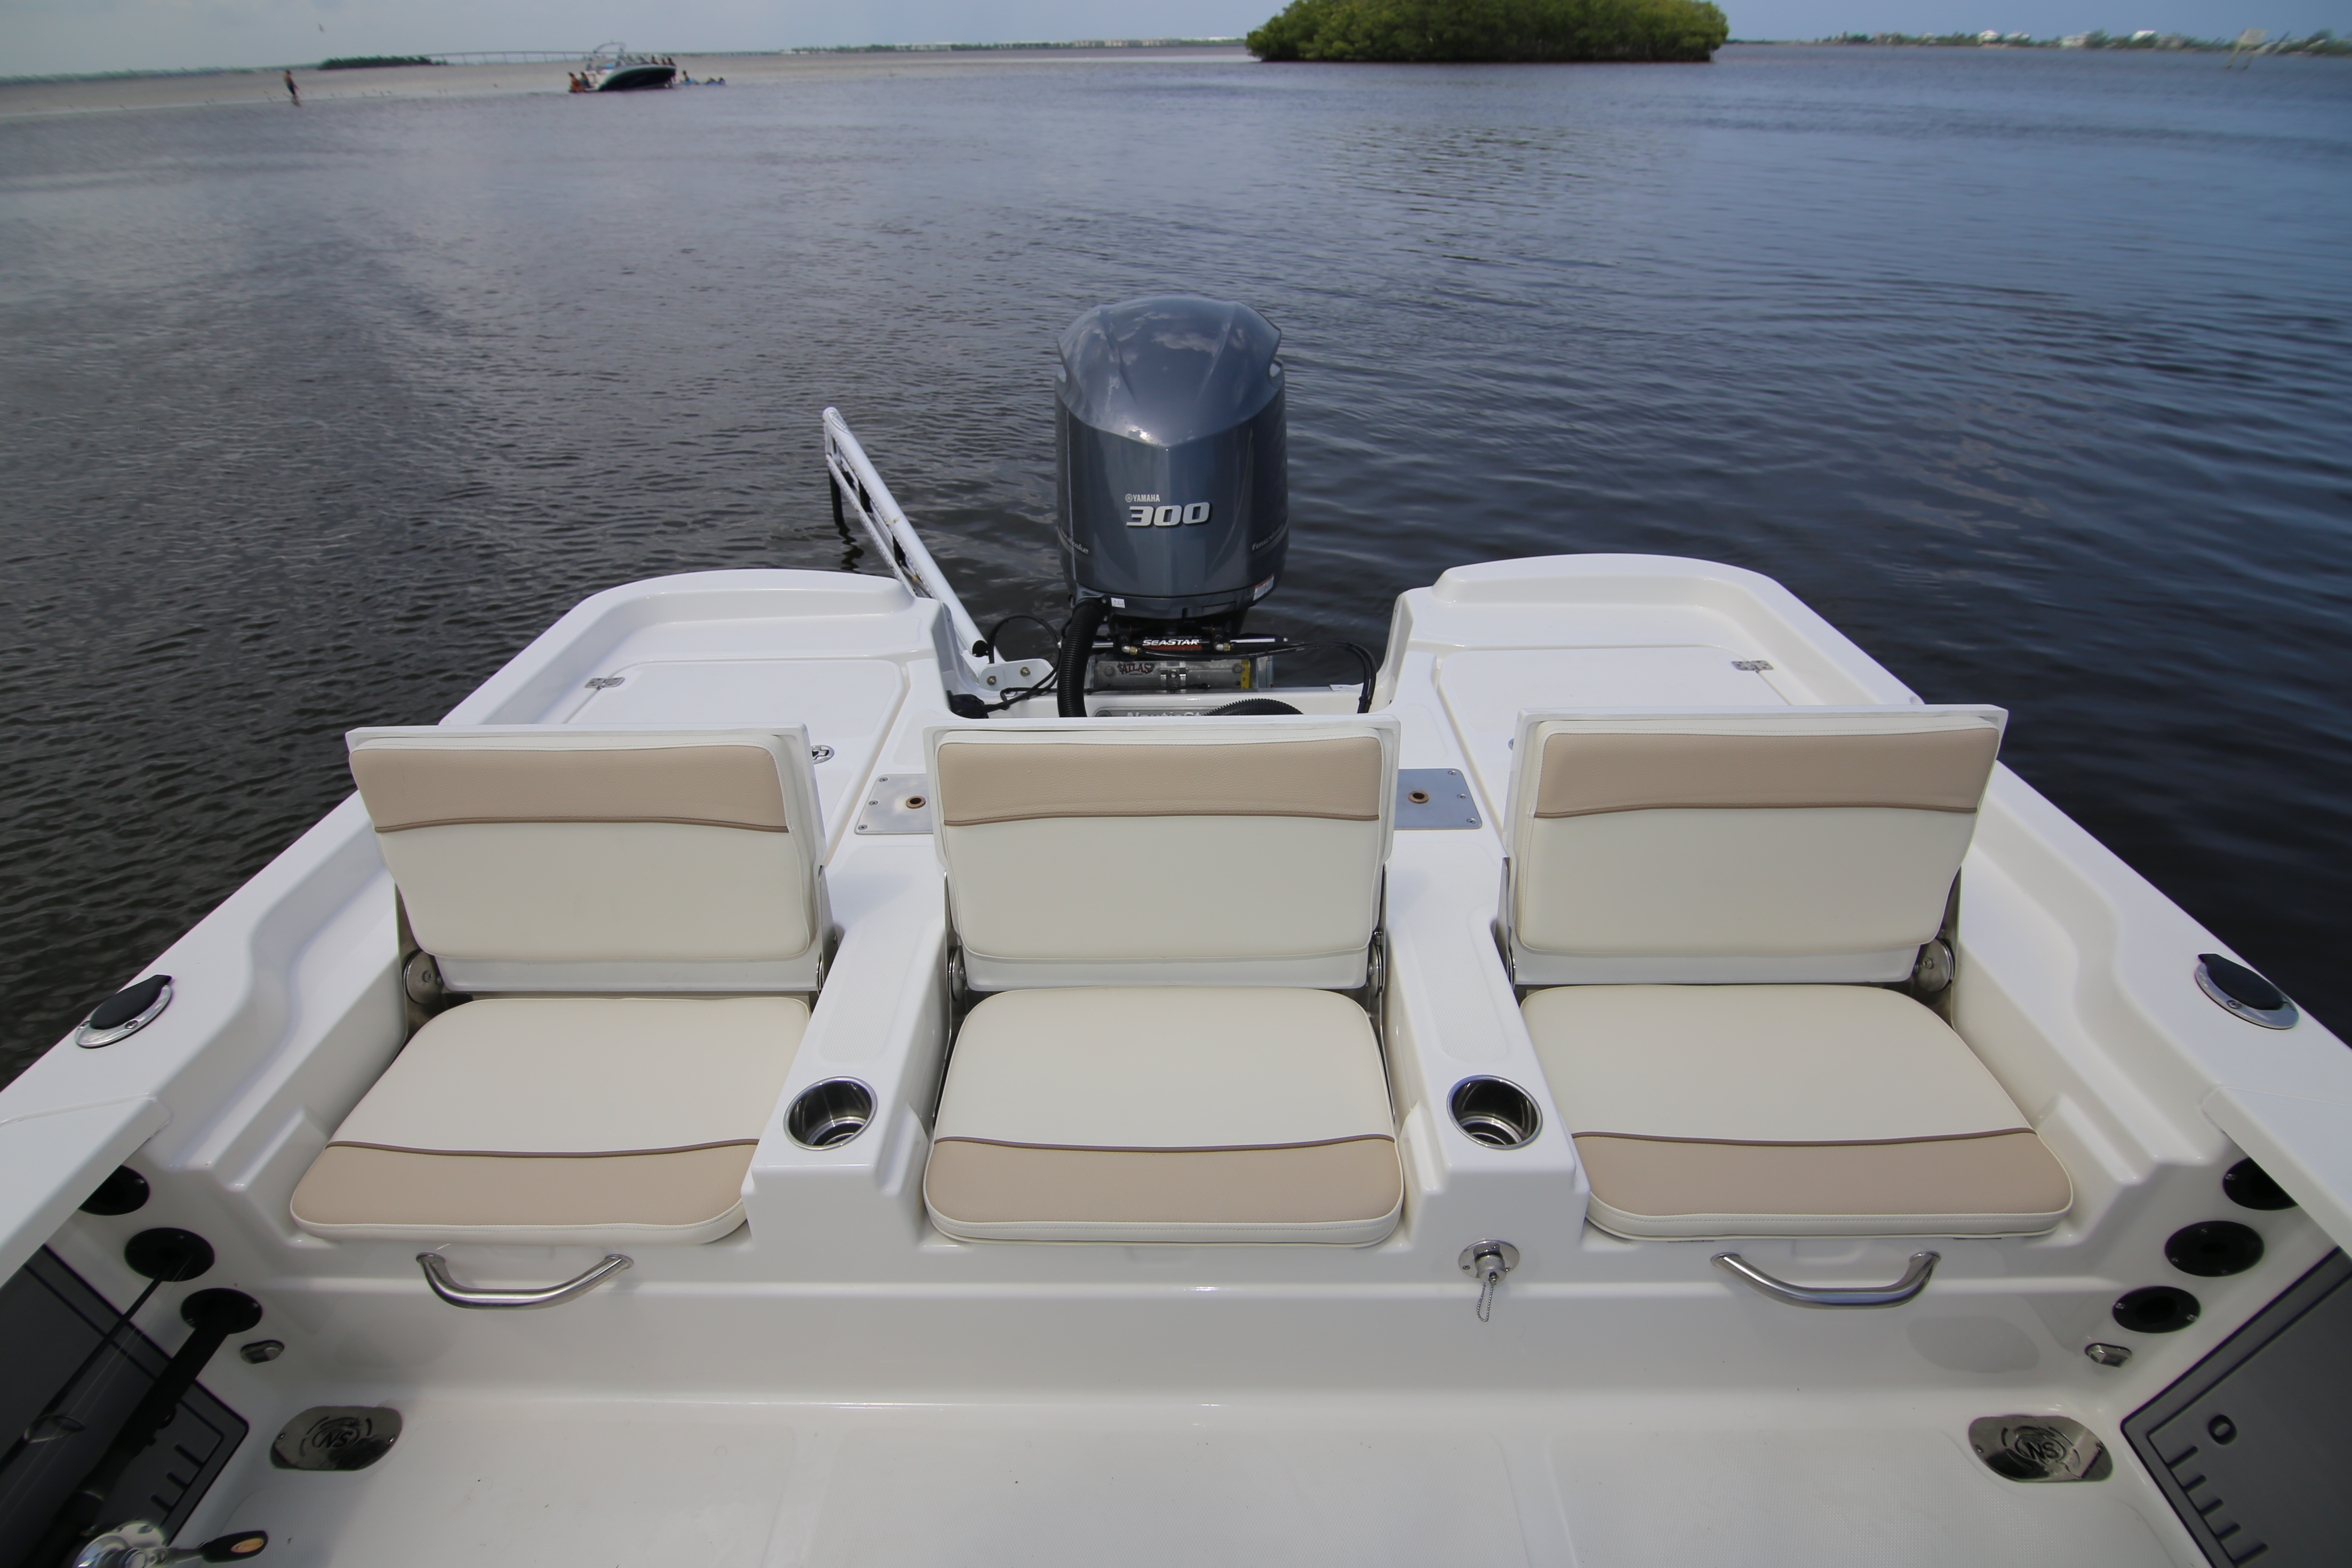 Nautic Star 265 XTS Jump Seat Review